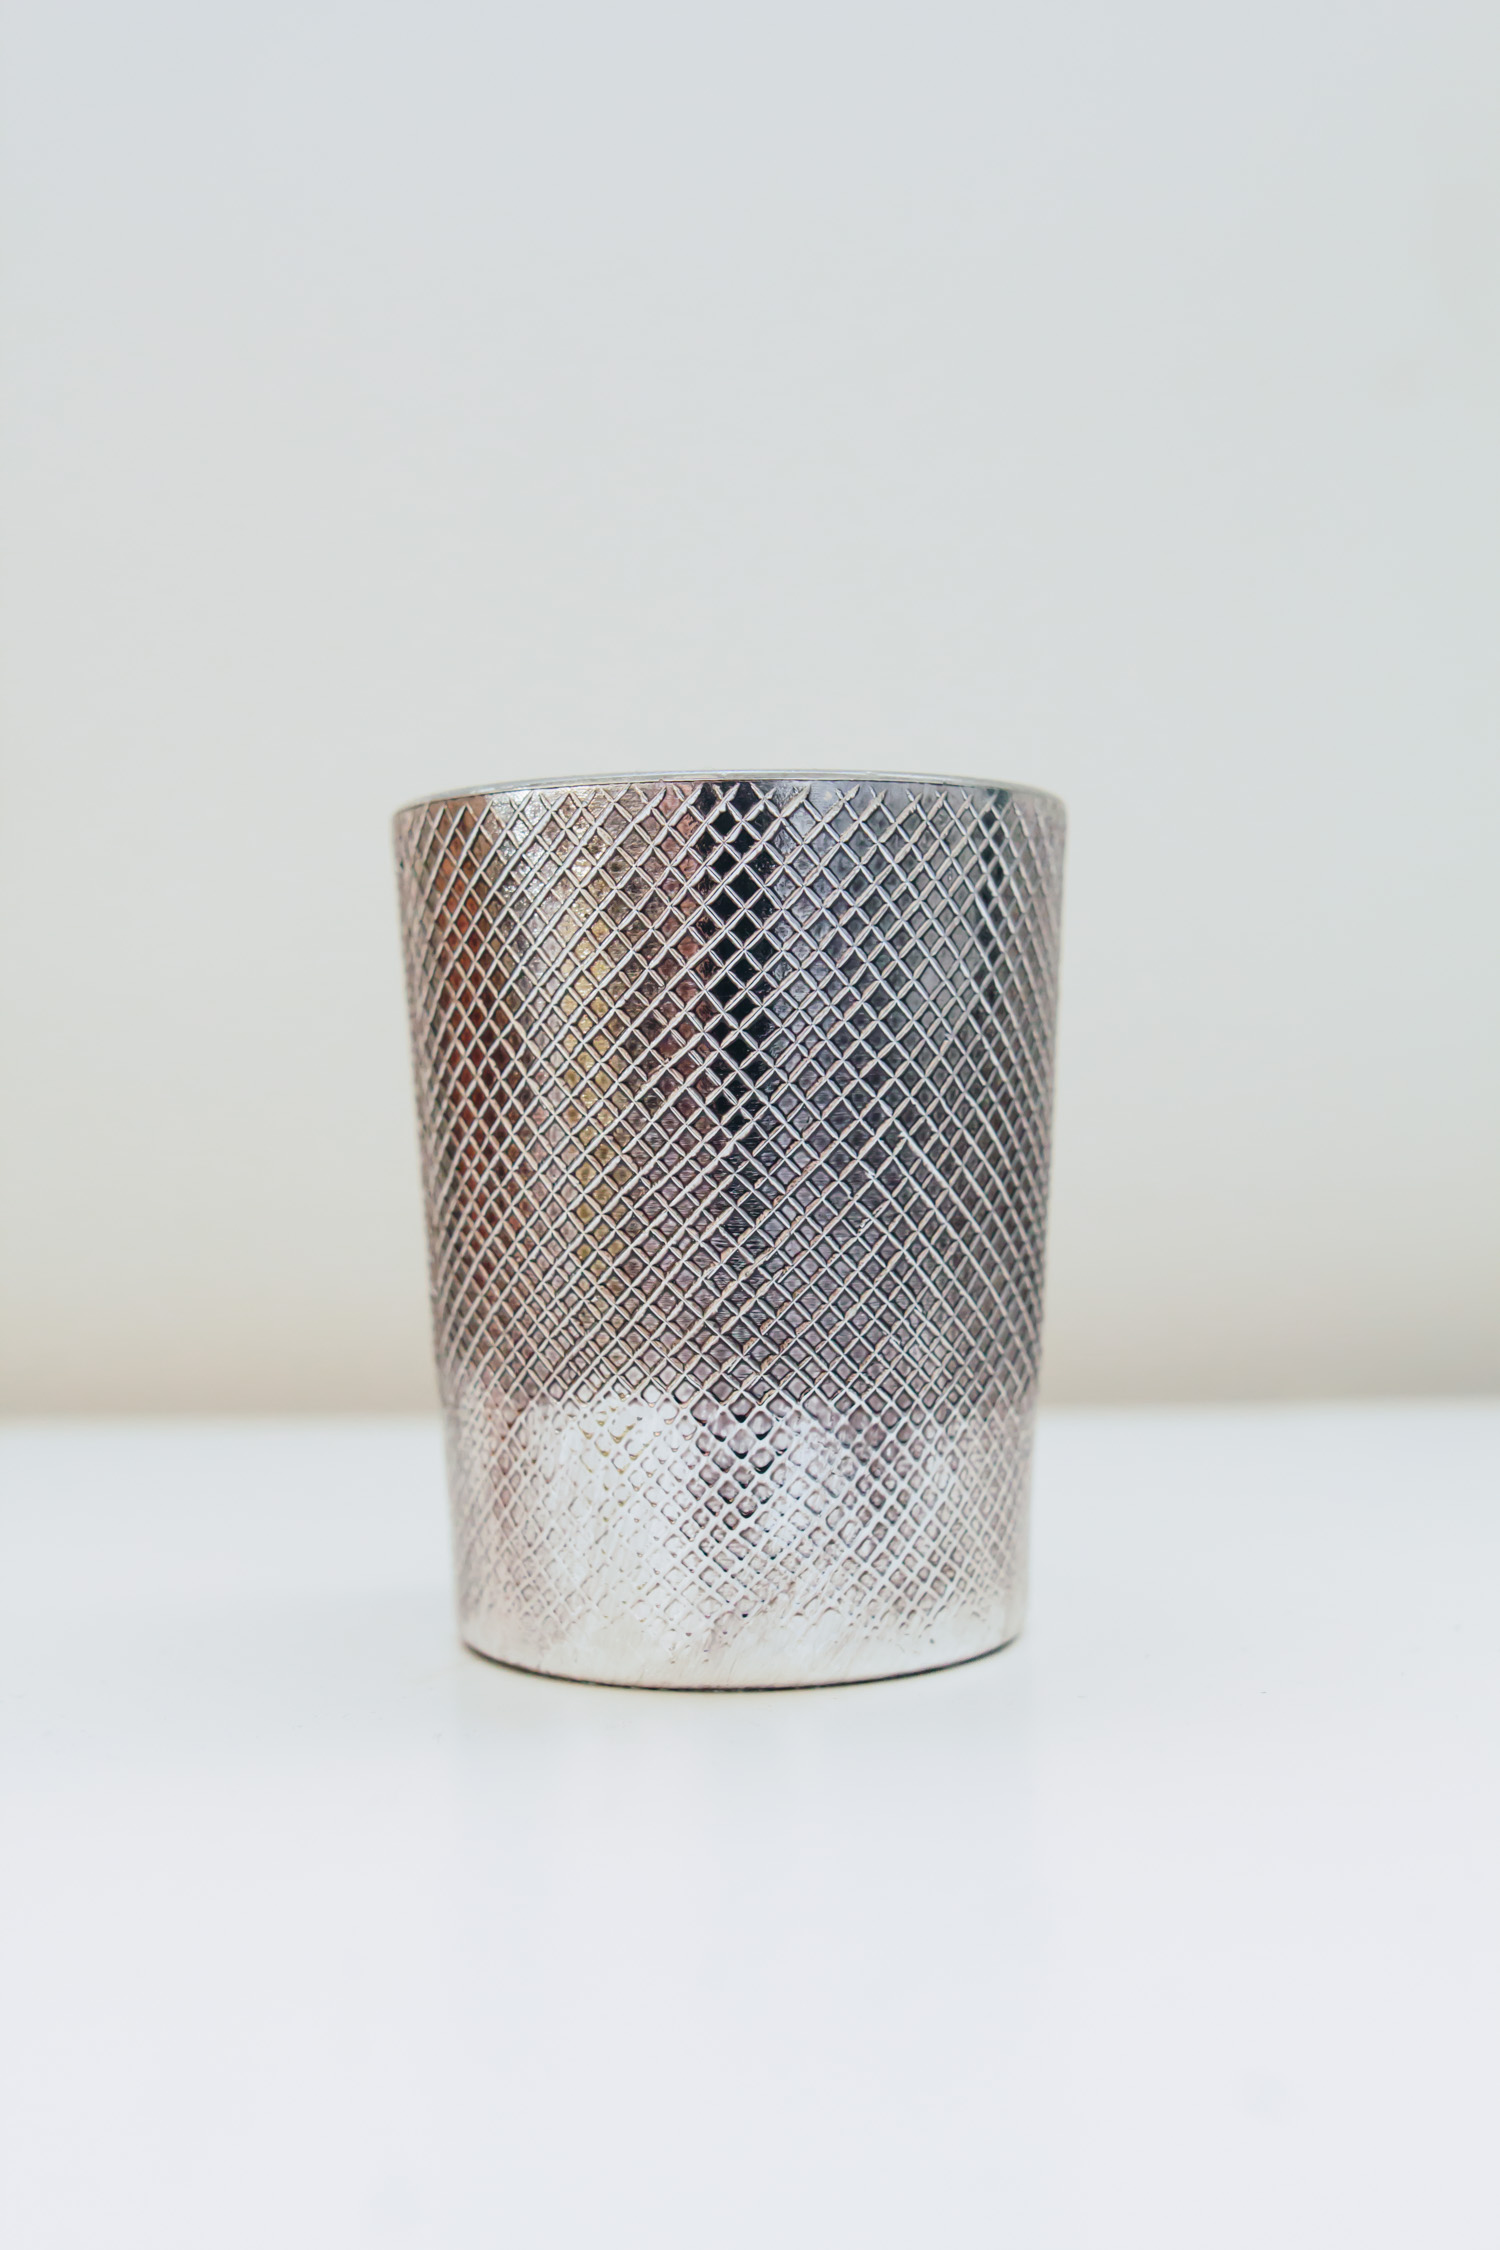 AVIDEAS INVENTORY VOTIVES VESSLES Slate Grey Patterned Votive.jpg